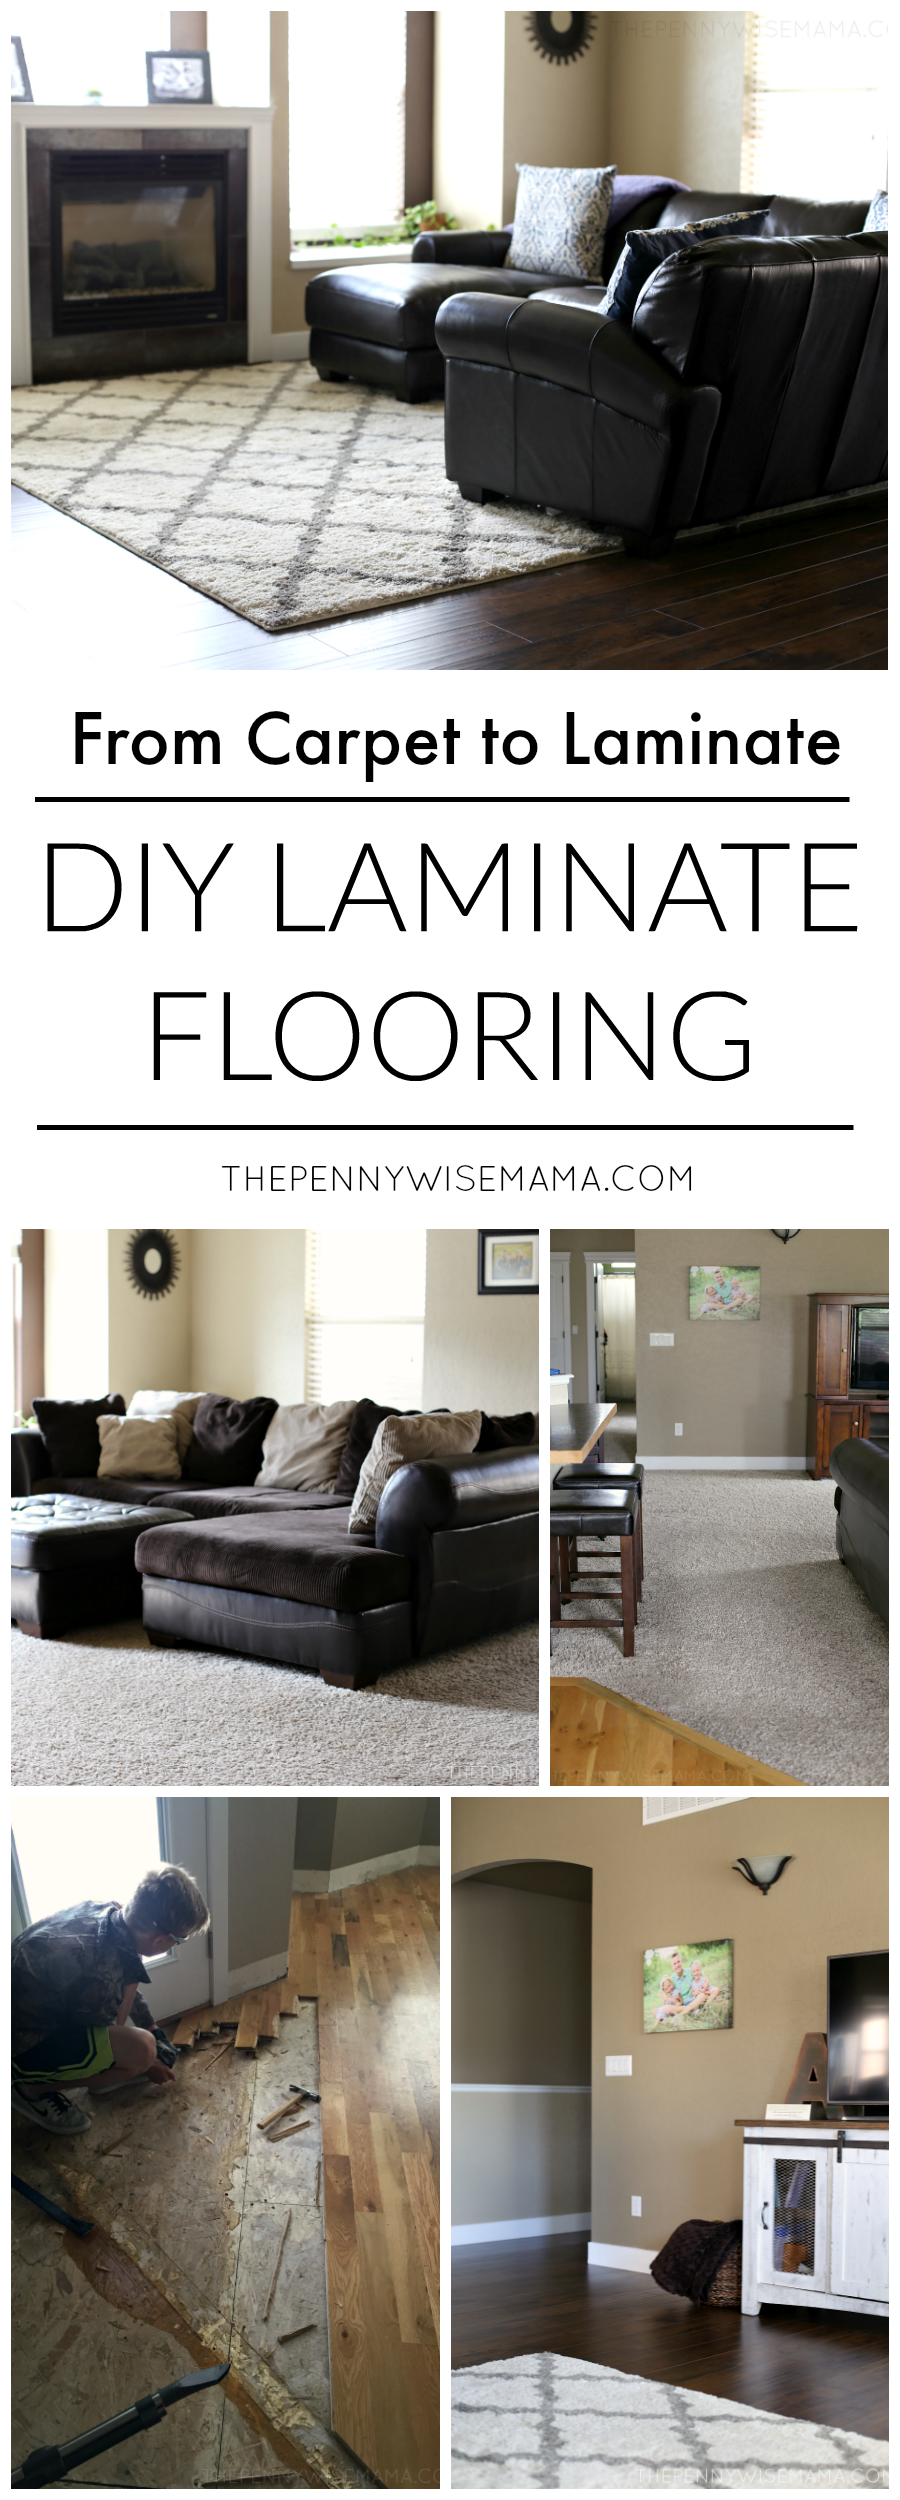 DIY Laminate Flooring featuring Select Surfaces laminate